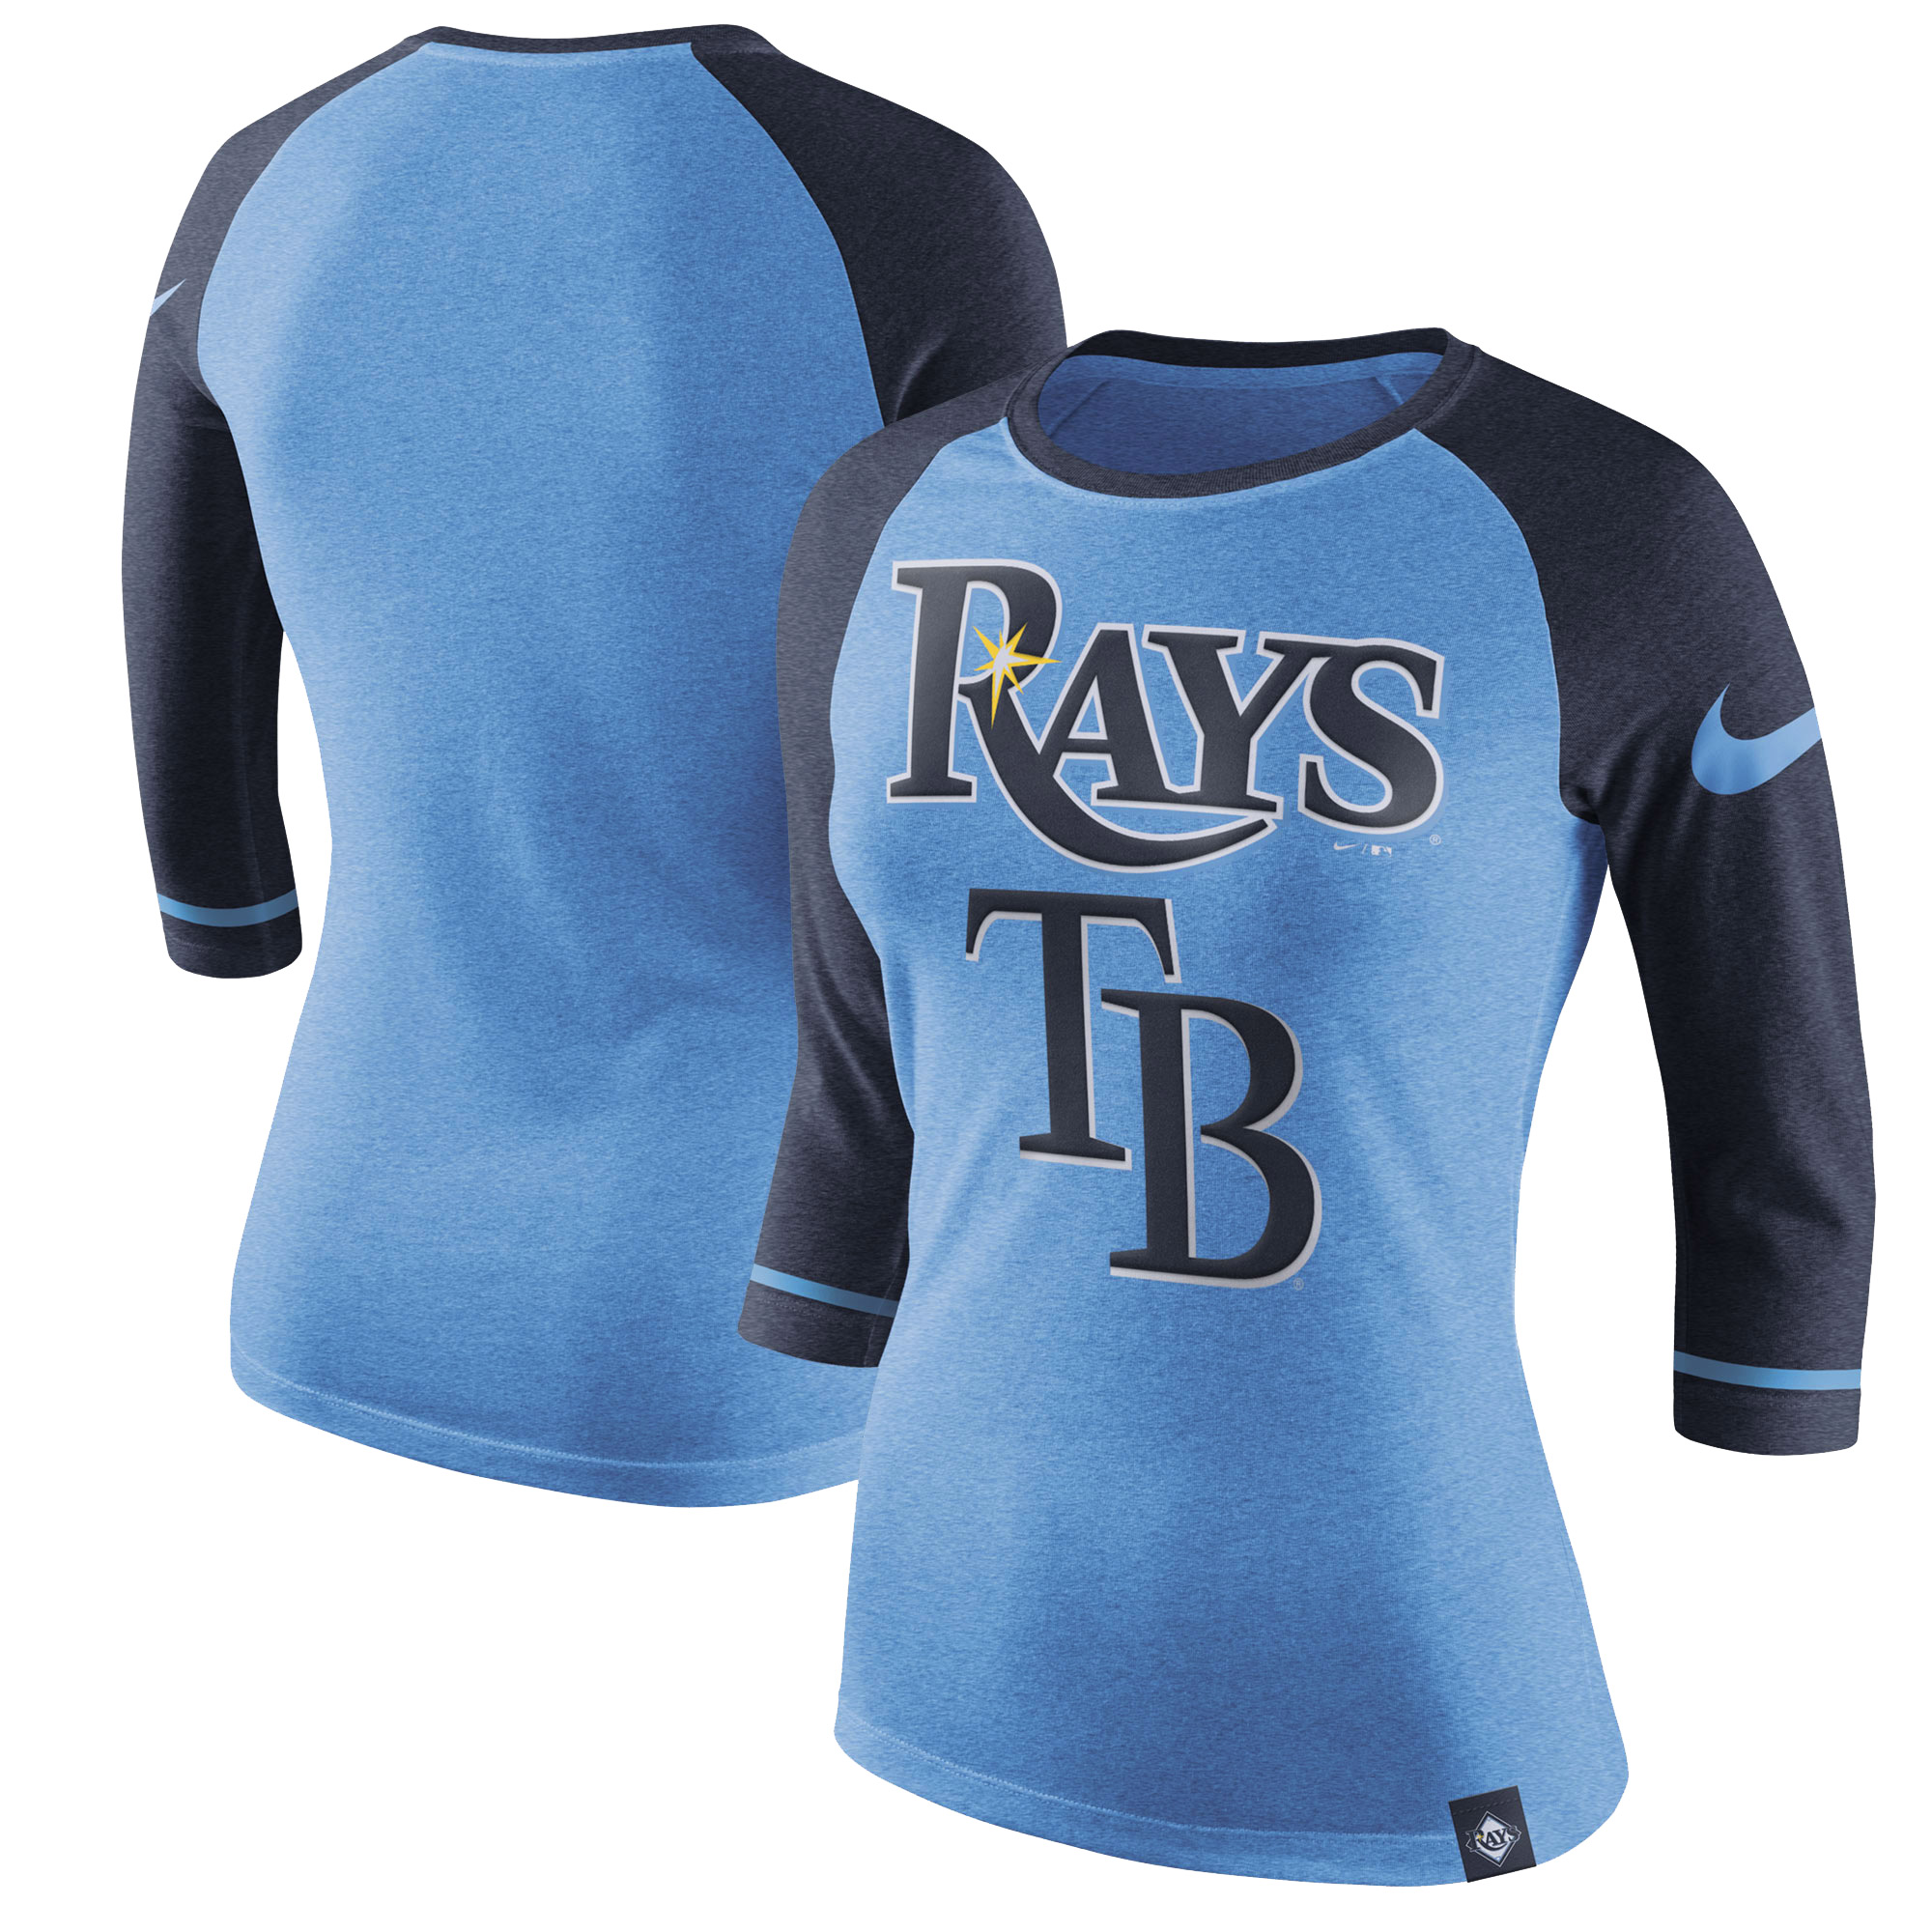 Women's Nike Light Blue Tampa Bay Rays Tri-Blend 3/4-Sleeve Raglan T-Shirt